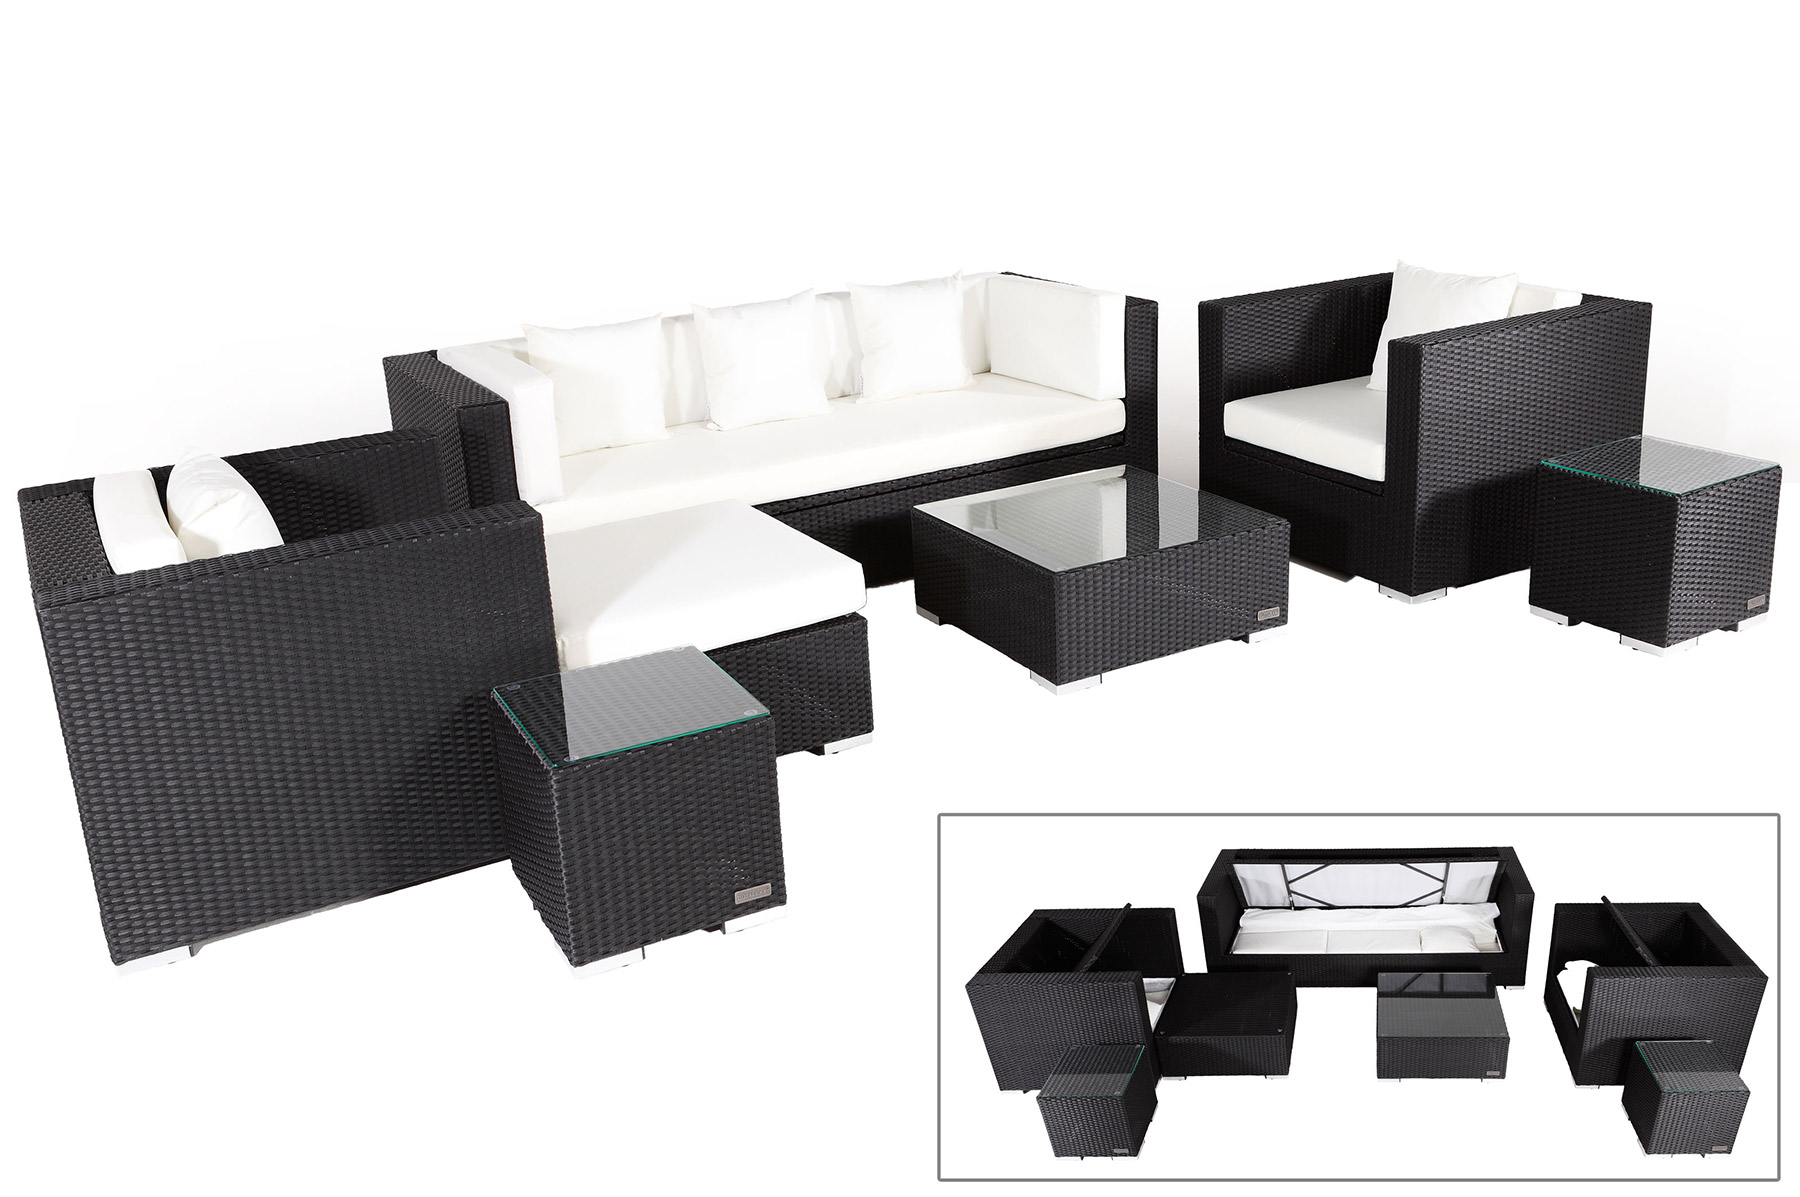 outflexx rattanm bel sitzgruppe aus polyrattan mit. Black Bedroom Furniture Sets. Home Design Ideas